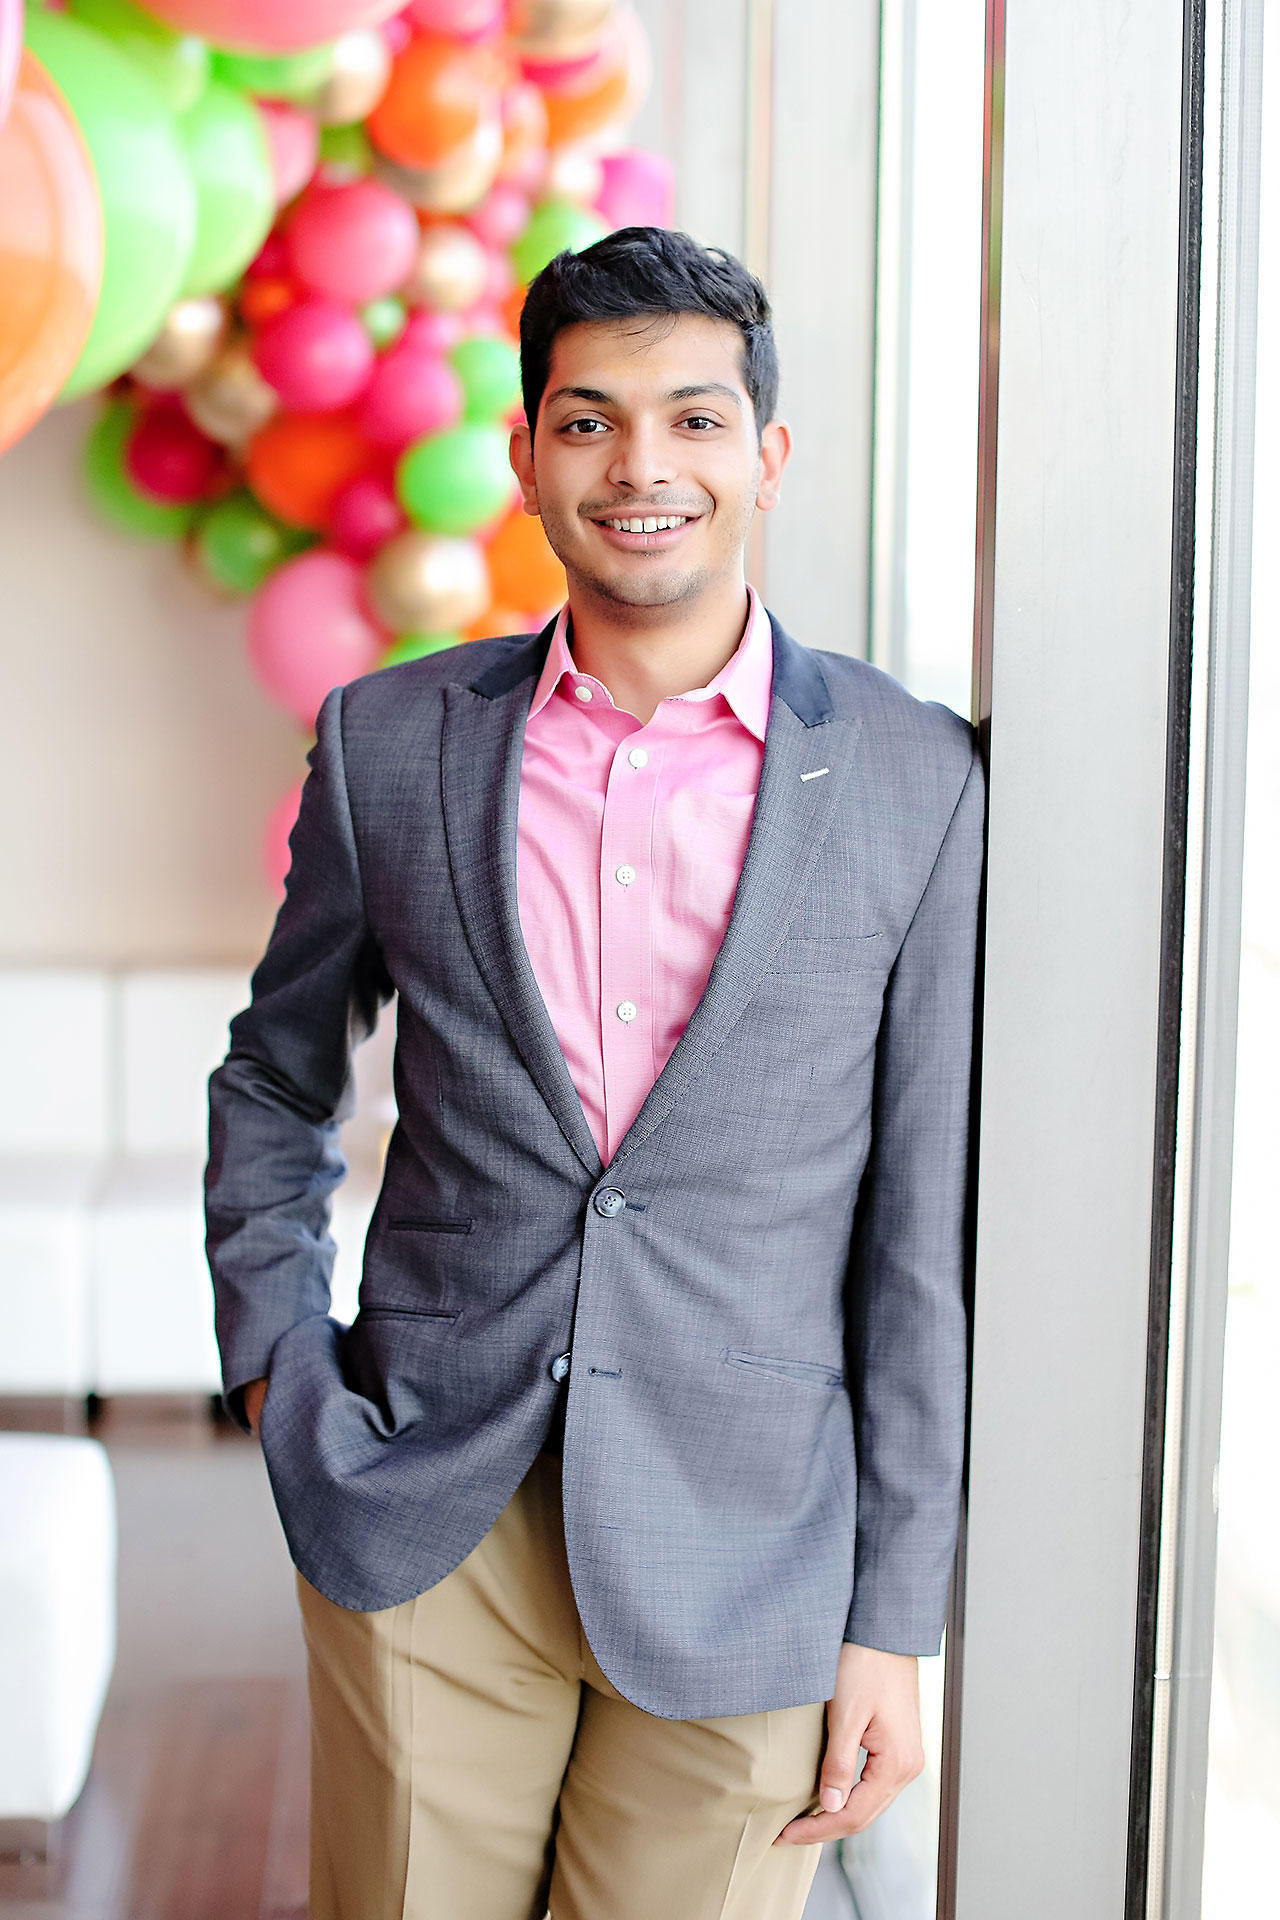 Joie Nikhil DAmore Indianapolis Welcome Party 053